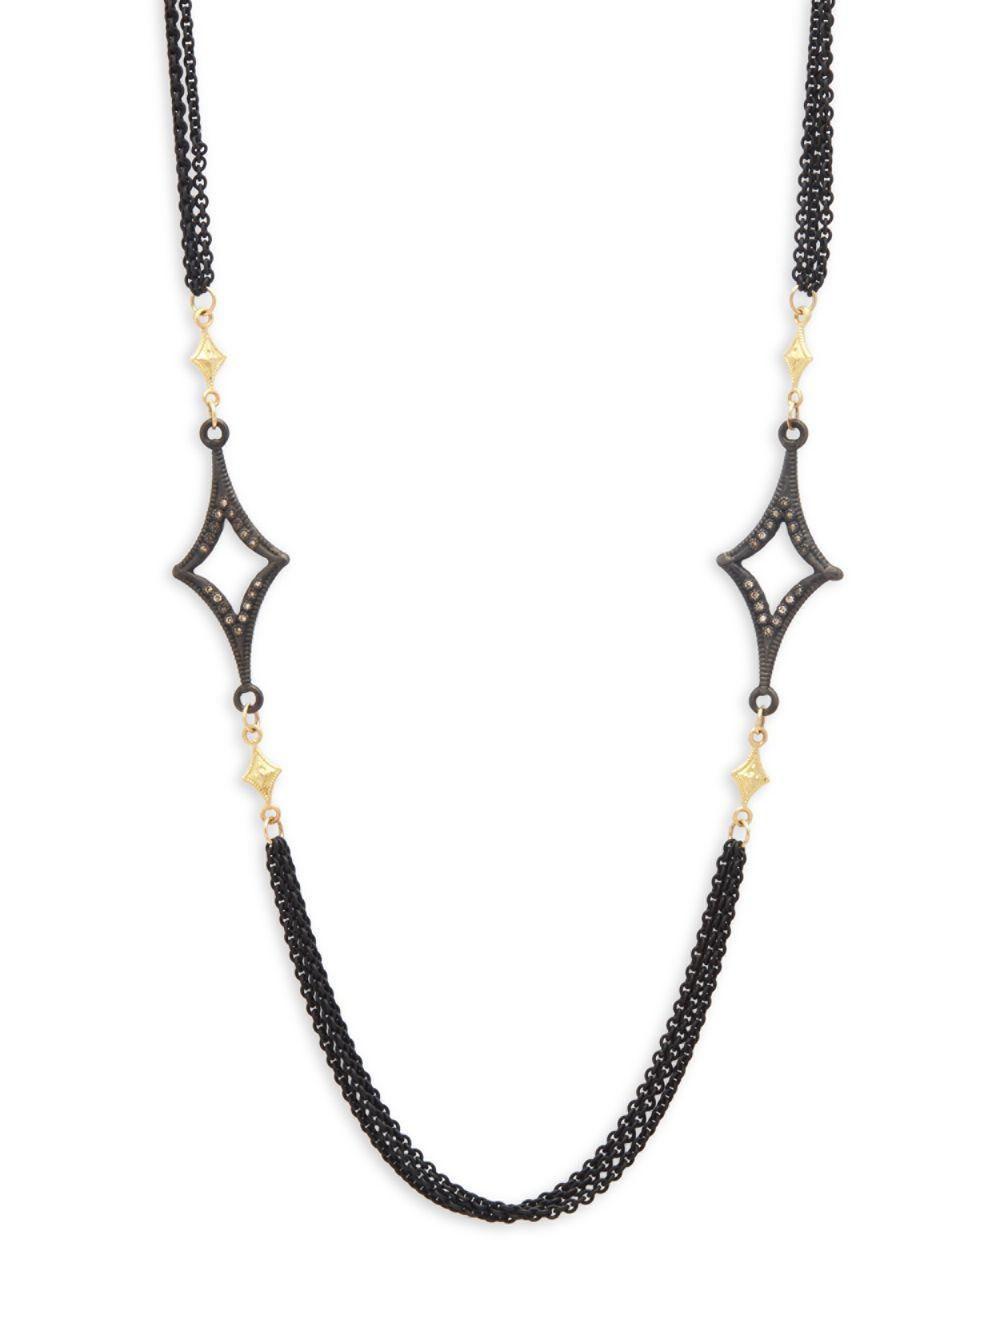 Armenta Long Open Cravelli Station Necklace, 36